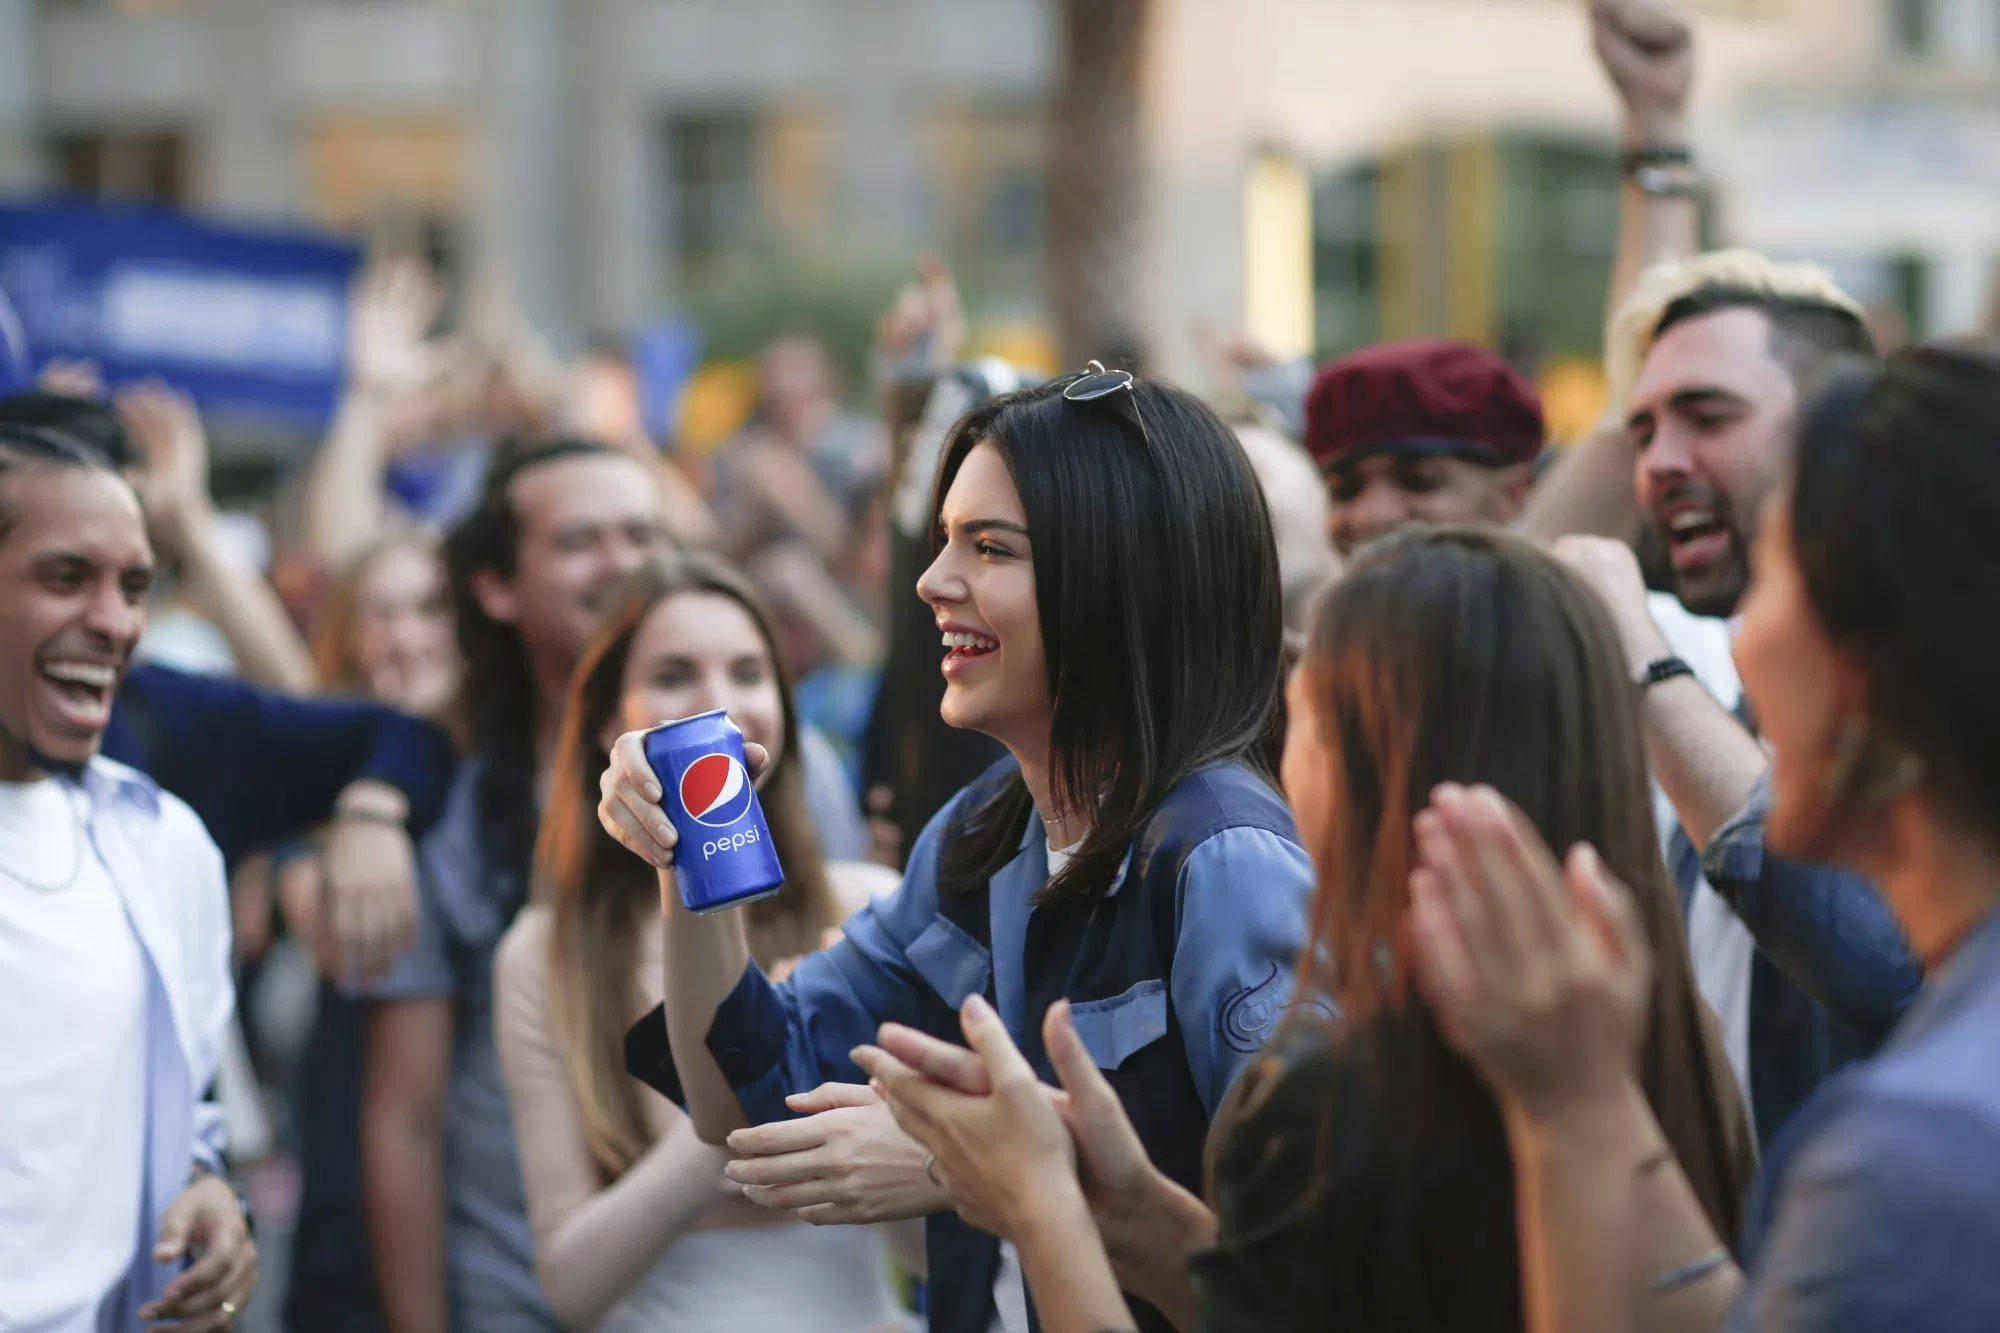 Kendall Jenner Cries Recalling Pepsi Scandal: 'I Just Felt So F**king Stupid'